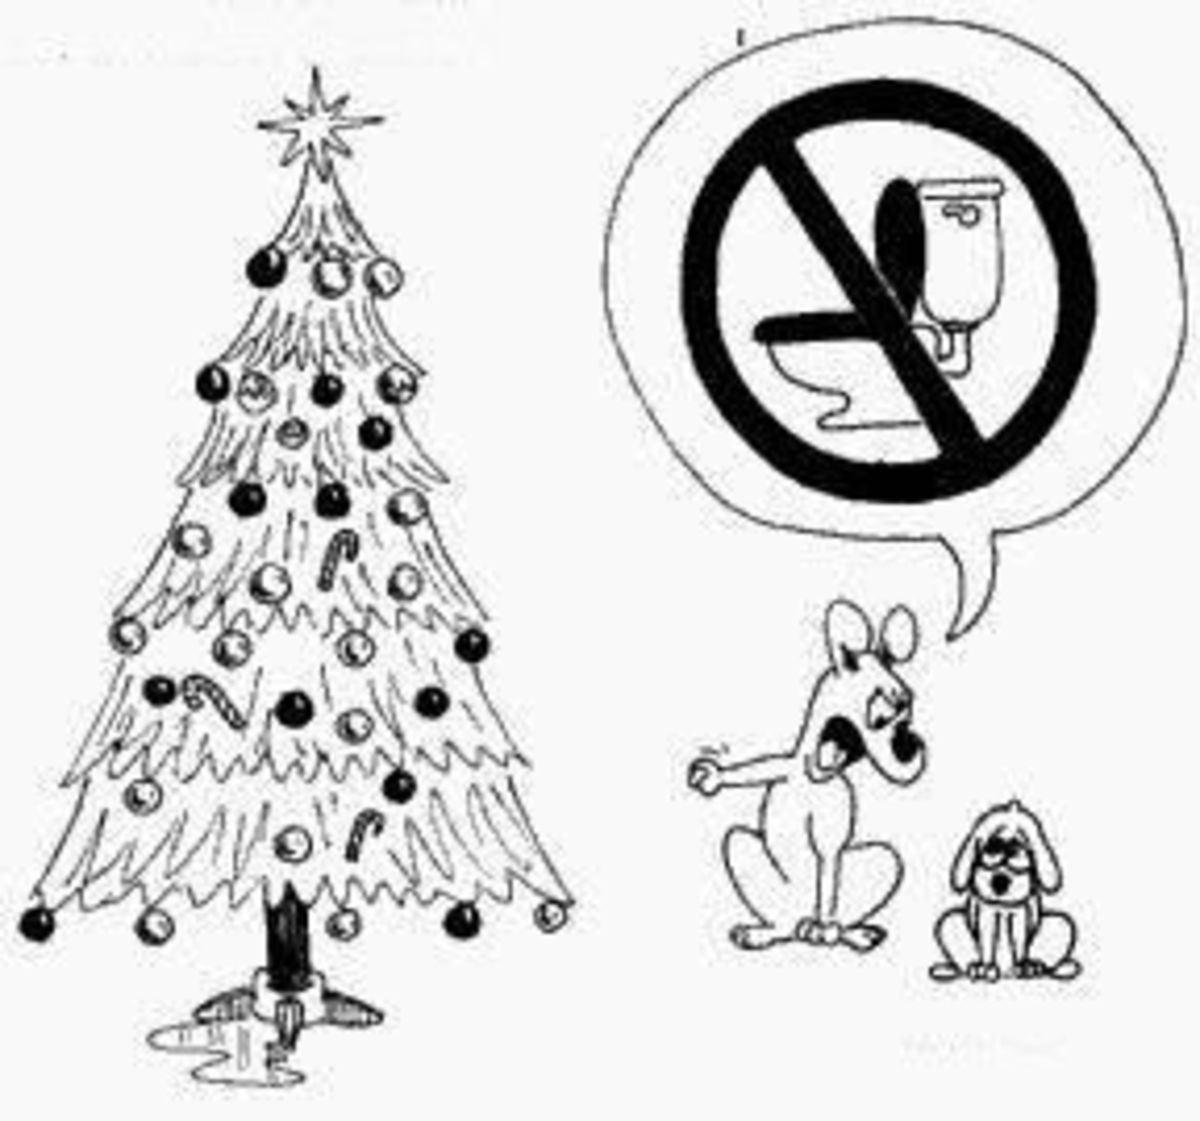 12 - Not On The Christmas Tree